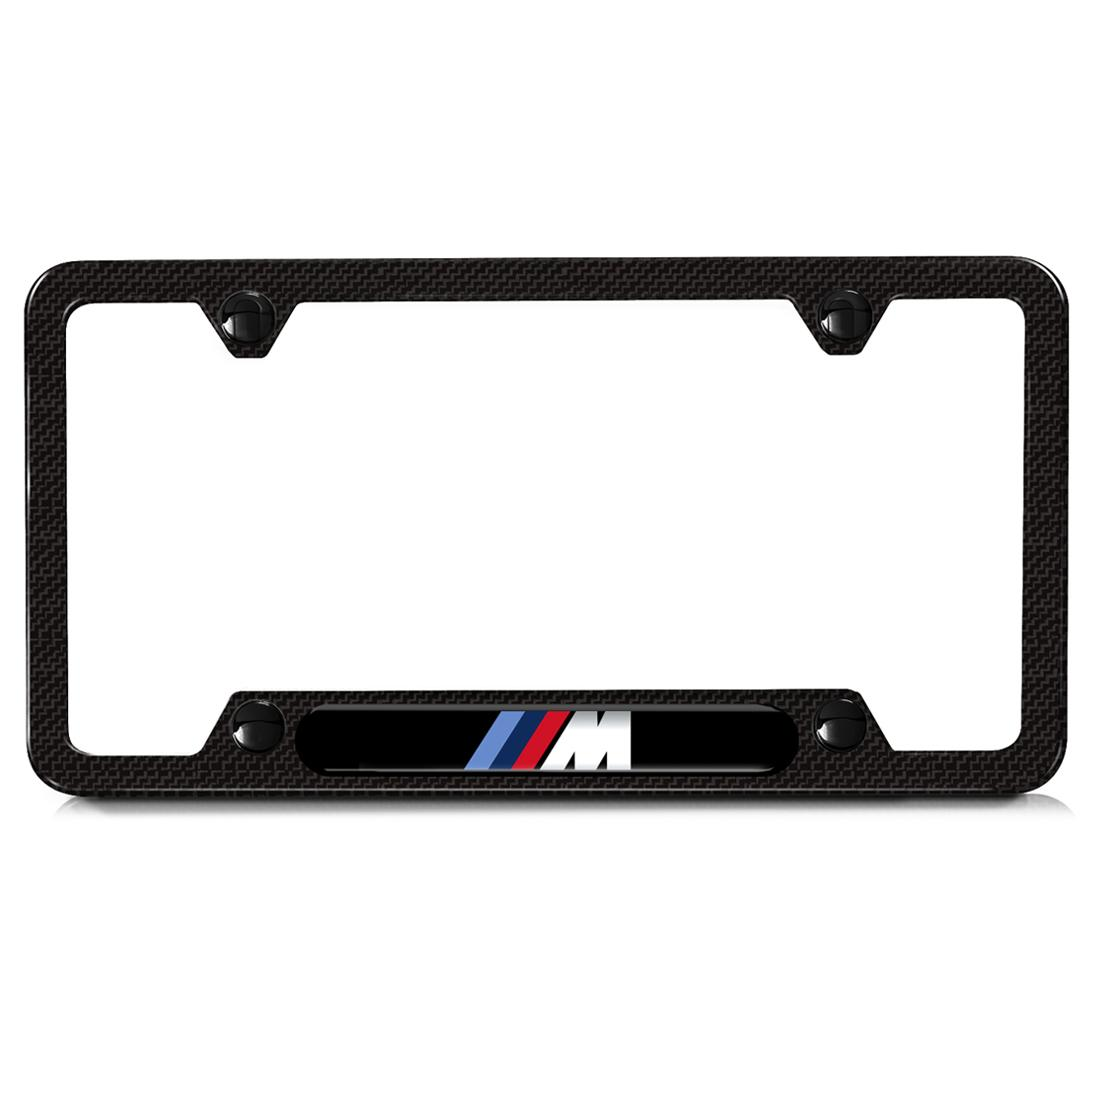 ShopBMWUSA.com: ACCESSORIES PRODUCTS: LICENSE PLATE FRAMES